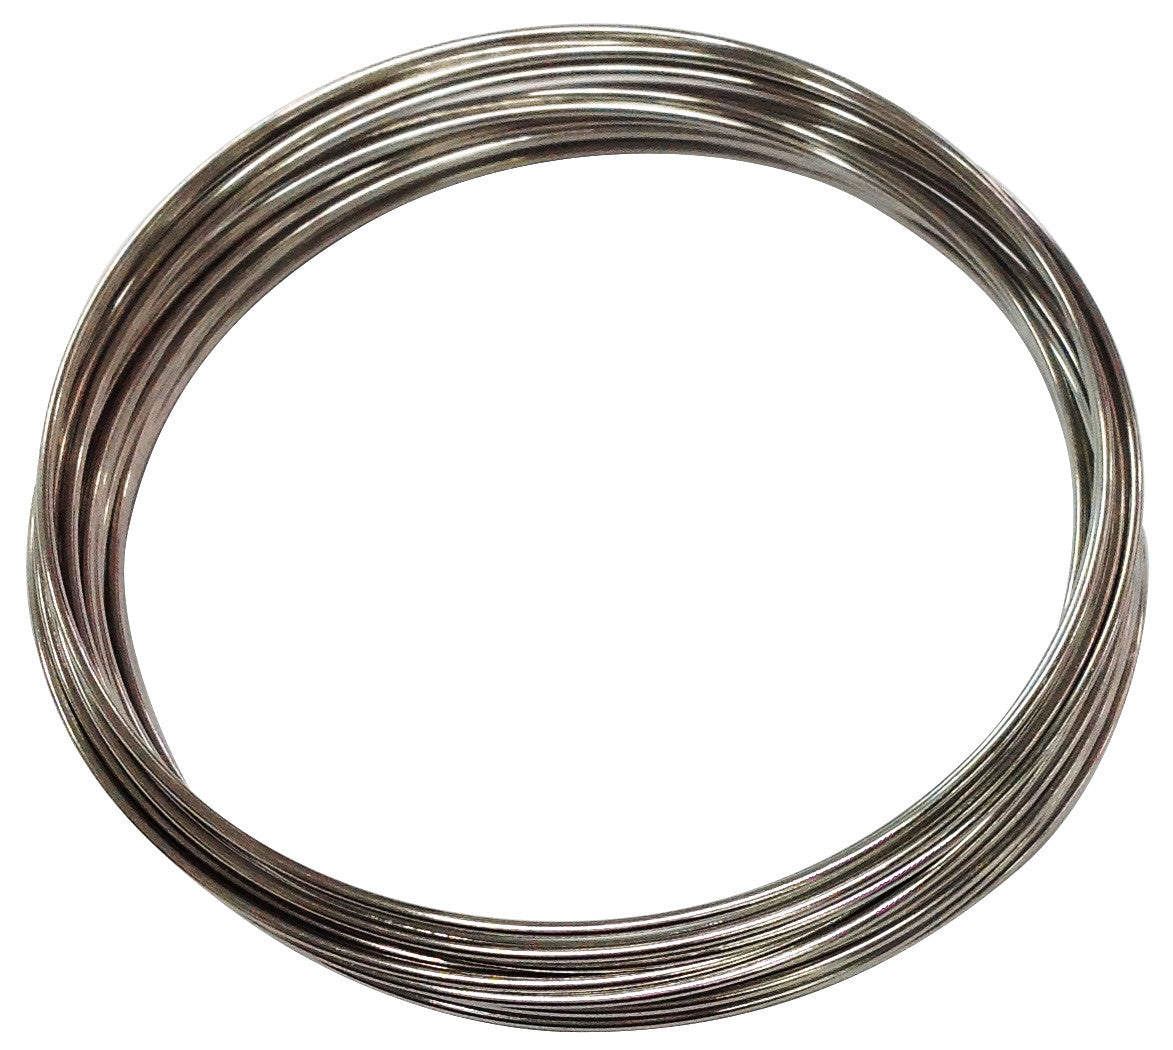 SEIZING WIRE STAINLESS STEEL – Fosters Ship Chandlery